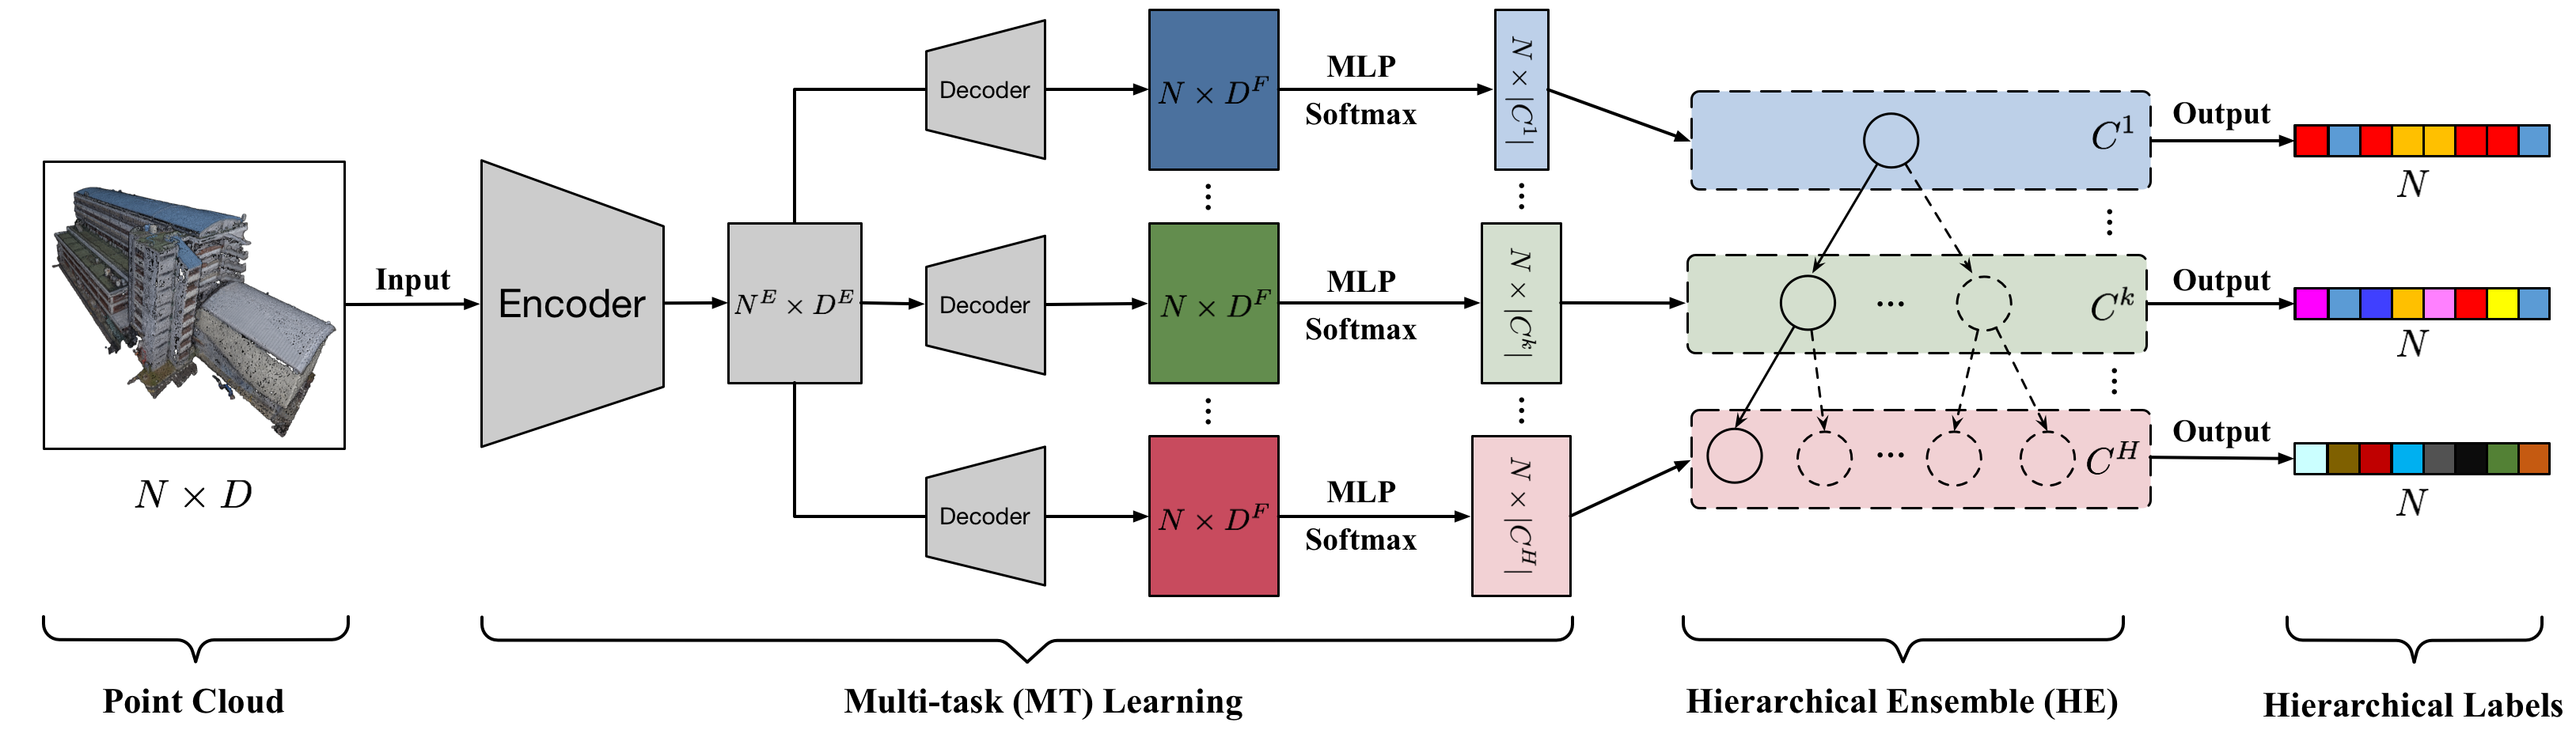 The framework of our method is divided into two stages: Multi-task Learning (MT) and Hierarchical Ensemble (HE). Point cloud data is fed as input. After feature extraction through the shared encoder, the features are decoded into multiple heads, and the predicted distributions at different granularity levels are obtained via MLP layers. Then, the HE stage utilizes hierarchical relationship to gain the final hierarchical labels. The width of the model depends on the hierarchical levels, where the